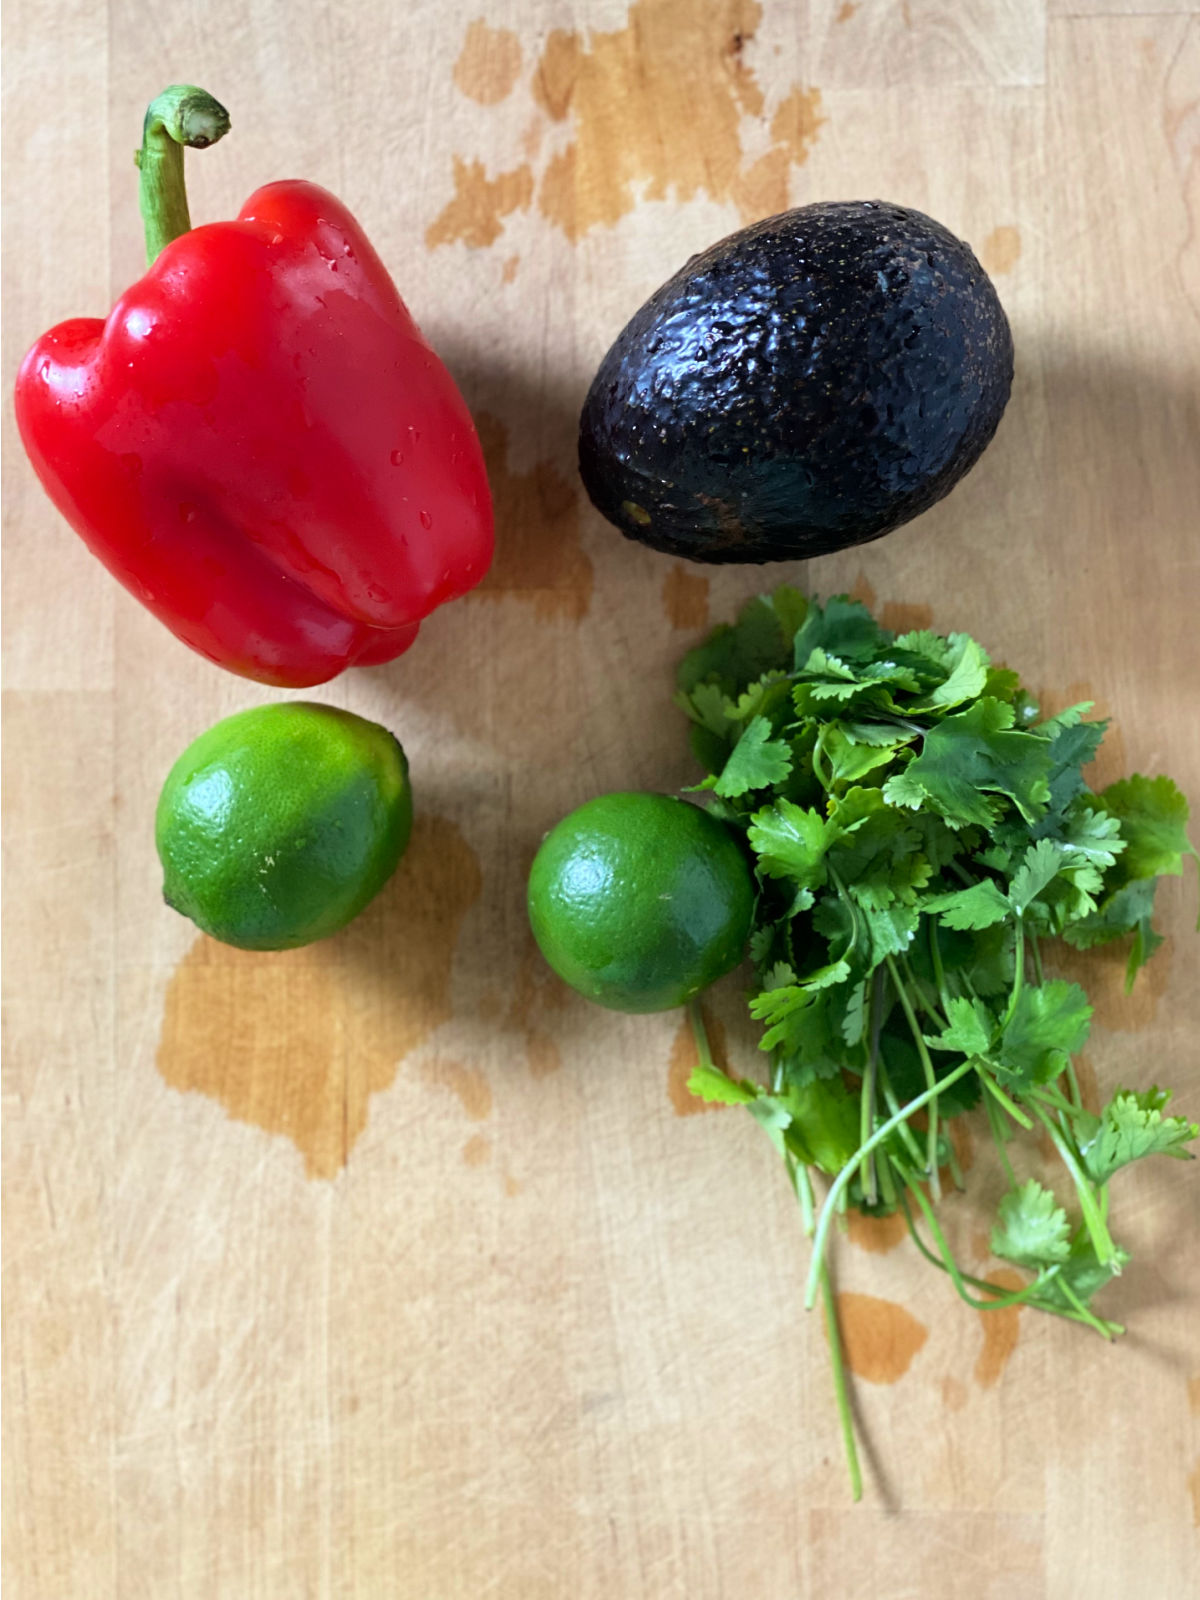 red bell pepper, avocado, limes, and cilantro